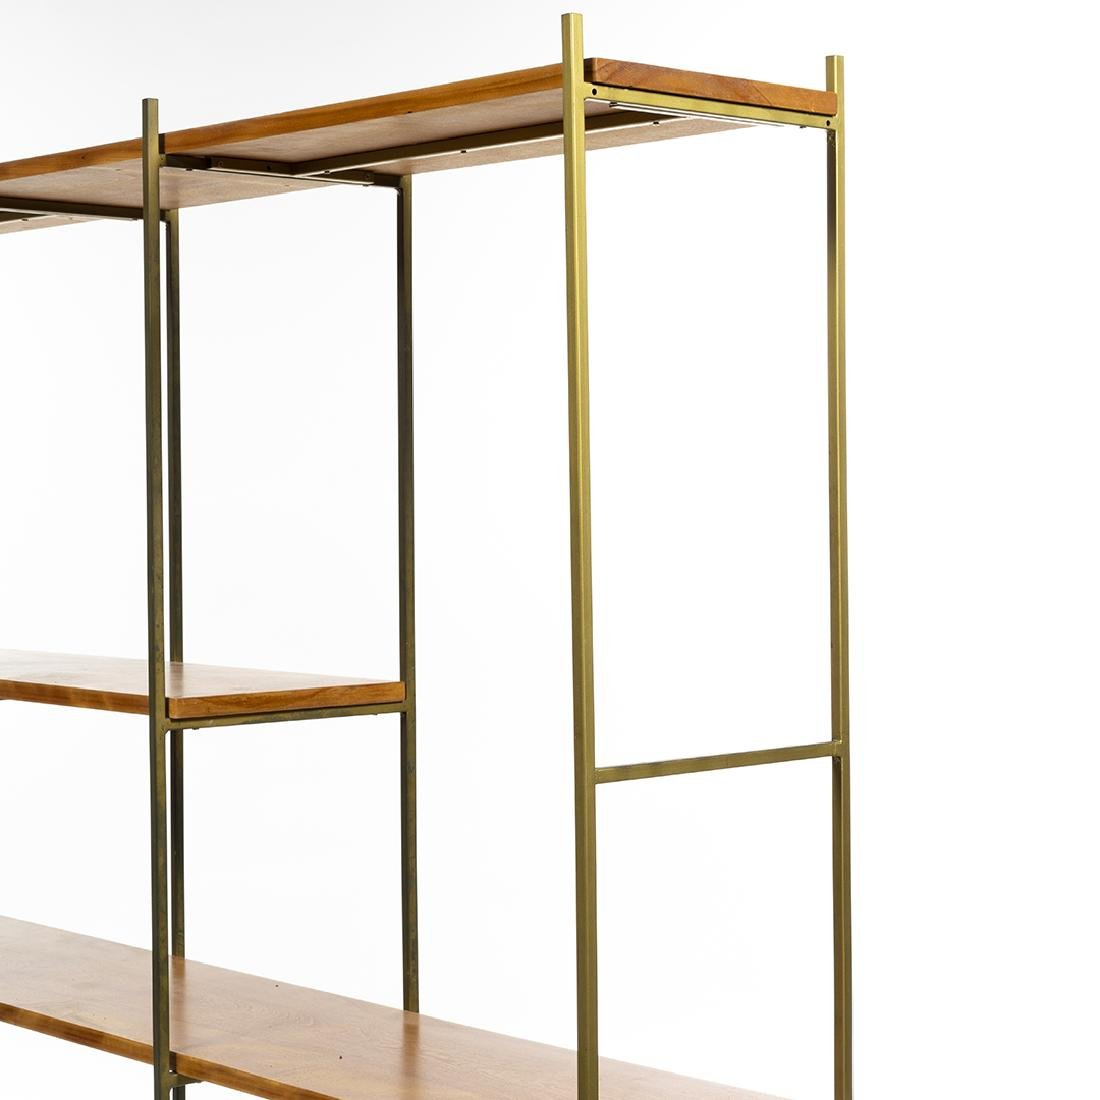 Kenneth Lind Room Divider - 3